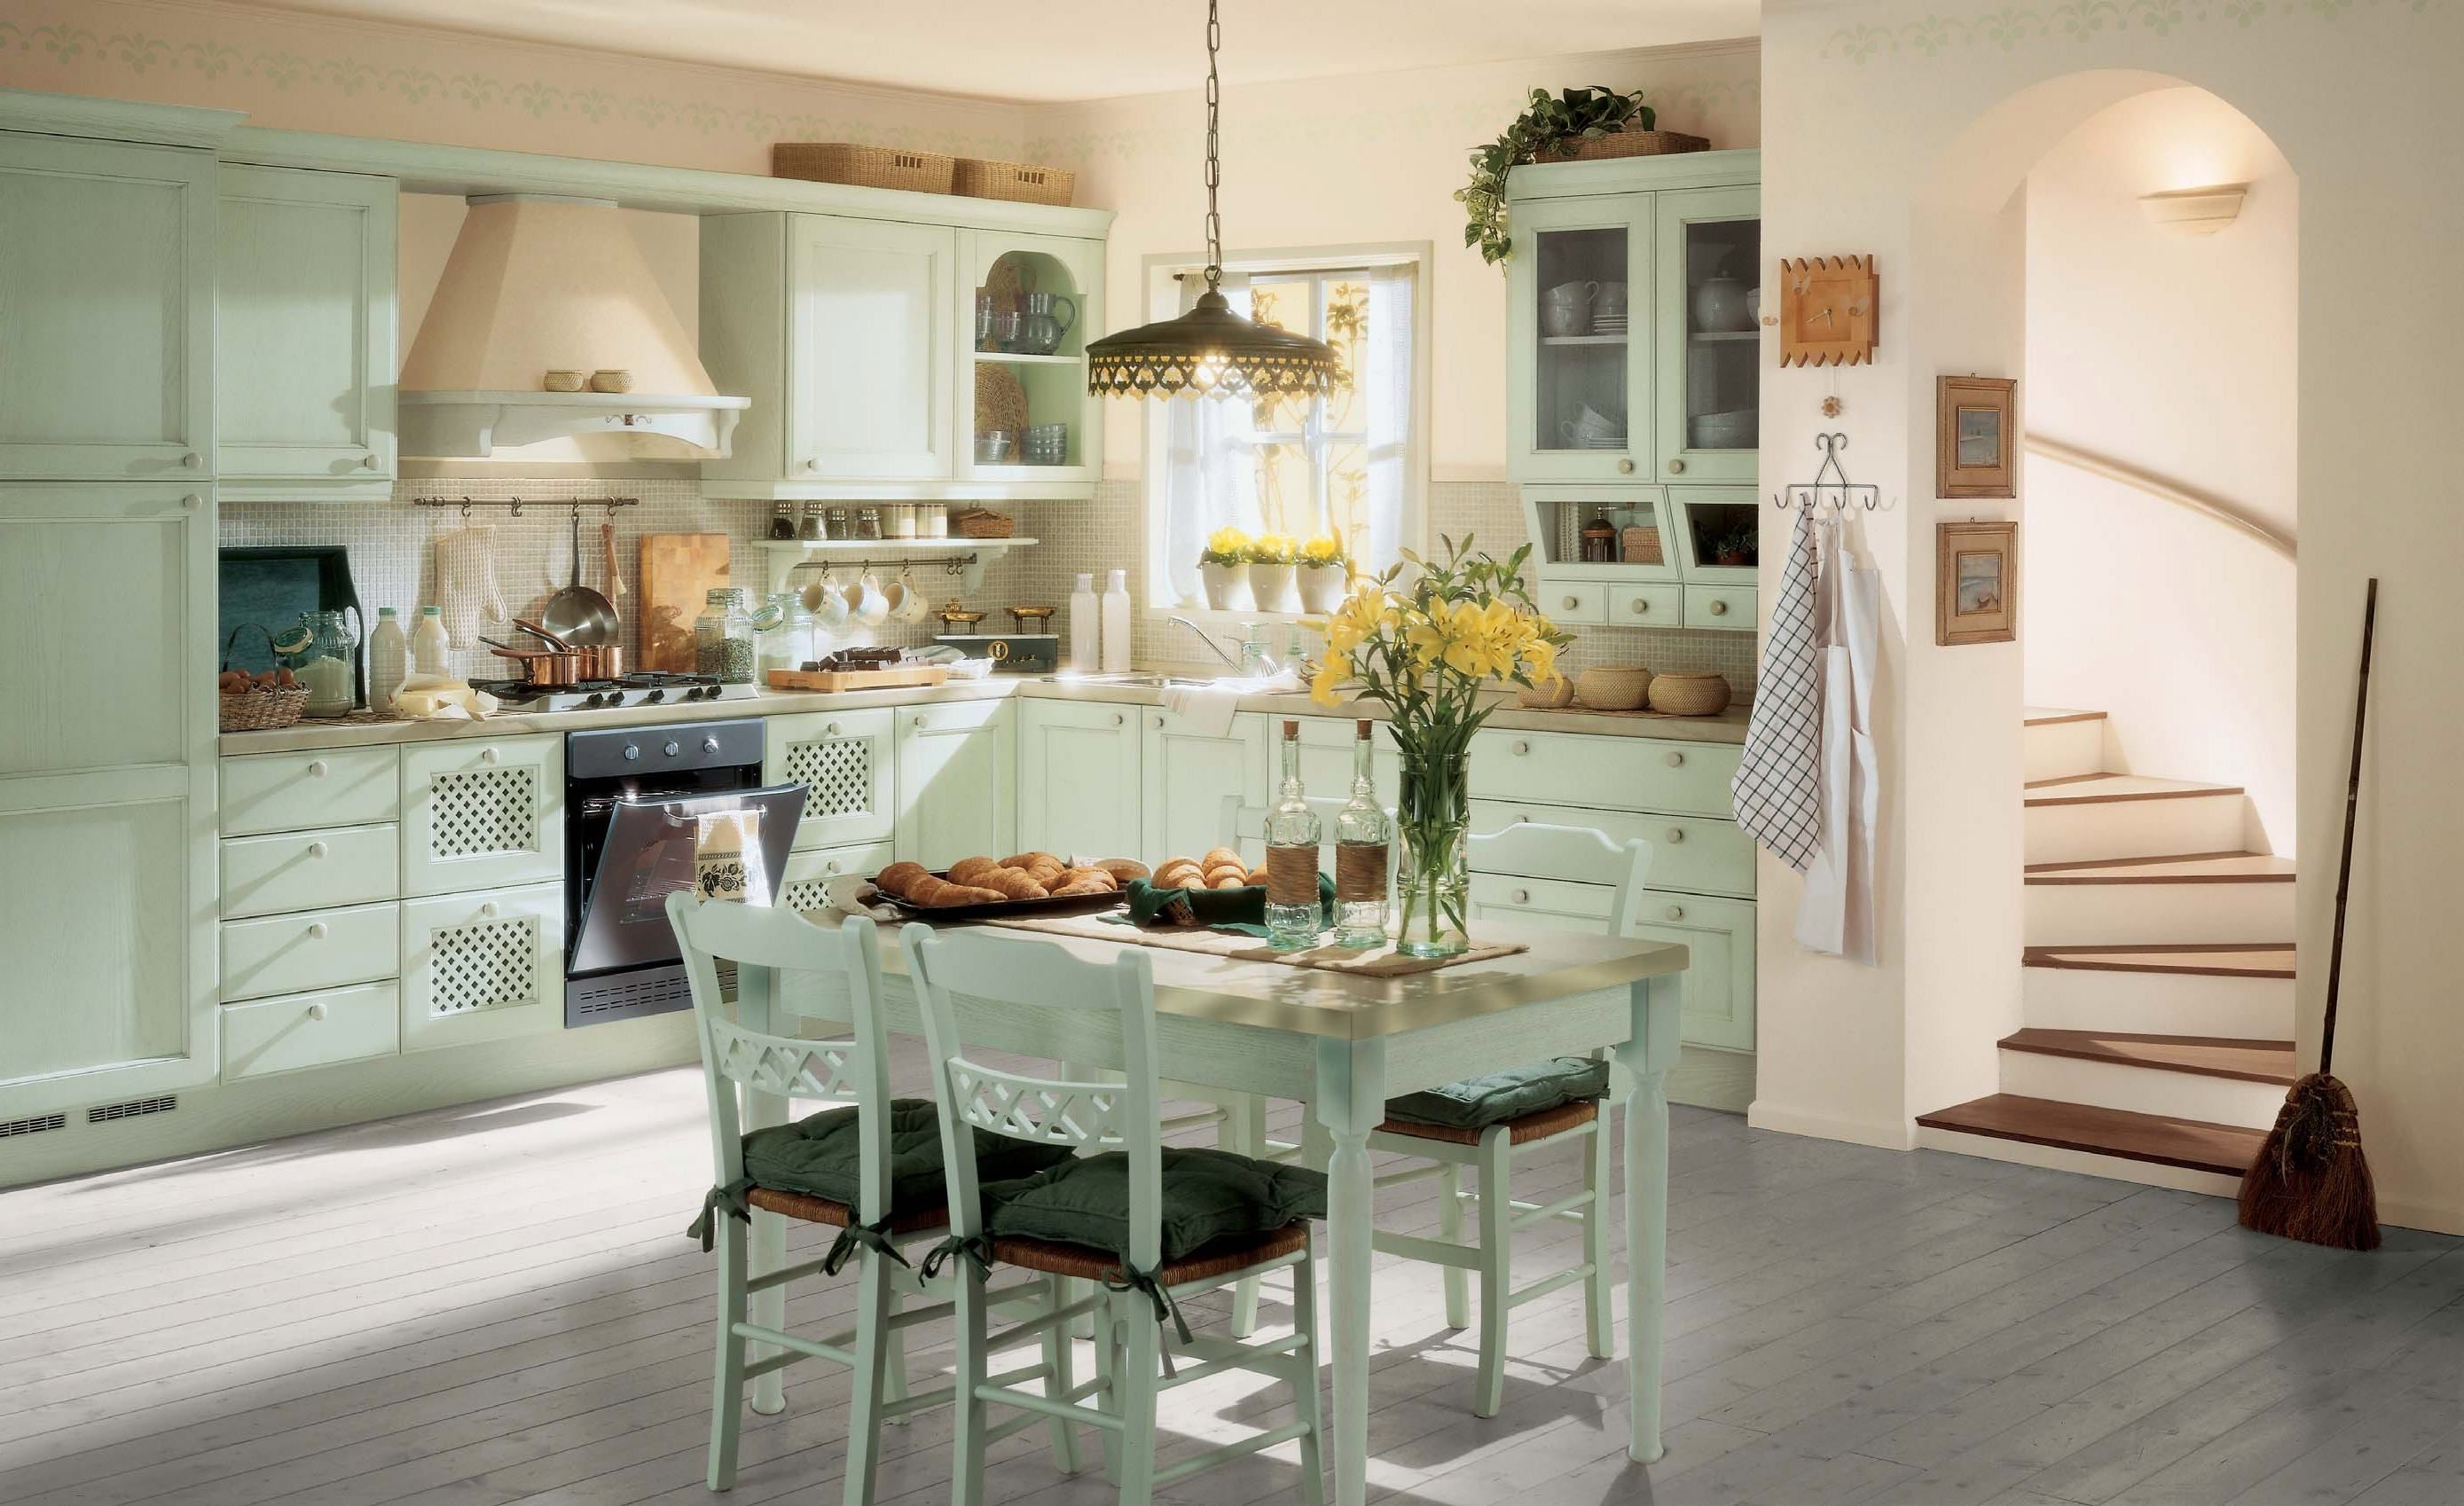 rustic-french-country-cottage-decor-also-small-eat-in-kitchen-ideas Eat Country Kitchen Ideas on country tile ideas, country small kitchens, country deck ideas, pantry ideas, country backyard ideas, breakfast nook ideas, country shower ideas, country baby ideas, living room ideas, dining room ideas, country bedrooms, country kitchens with ceiling beam, country utility room ideas, country game room ideas, country garden ideas, country garage ideas, country stairs ideas, country spa ideas, country cottage kitchens, fireplace ideas,